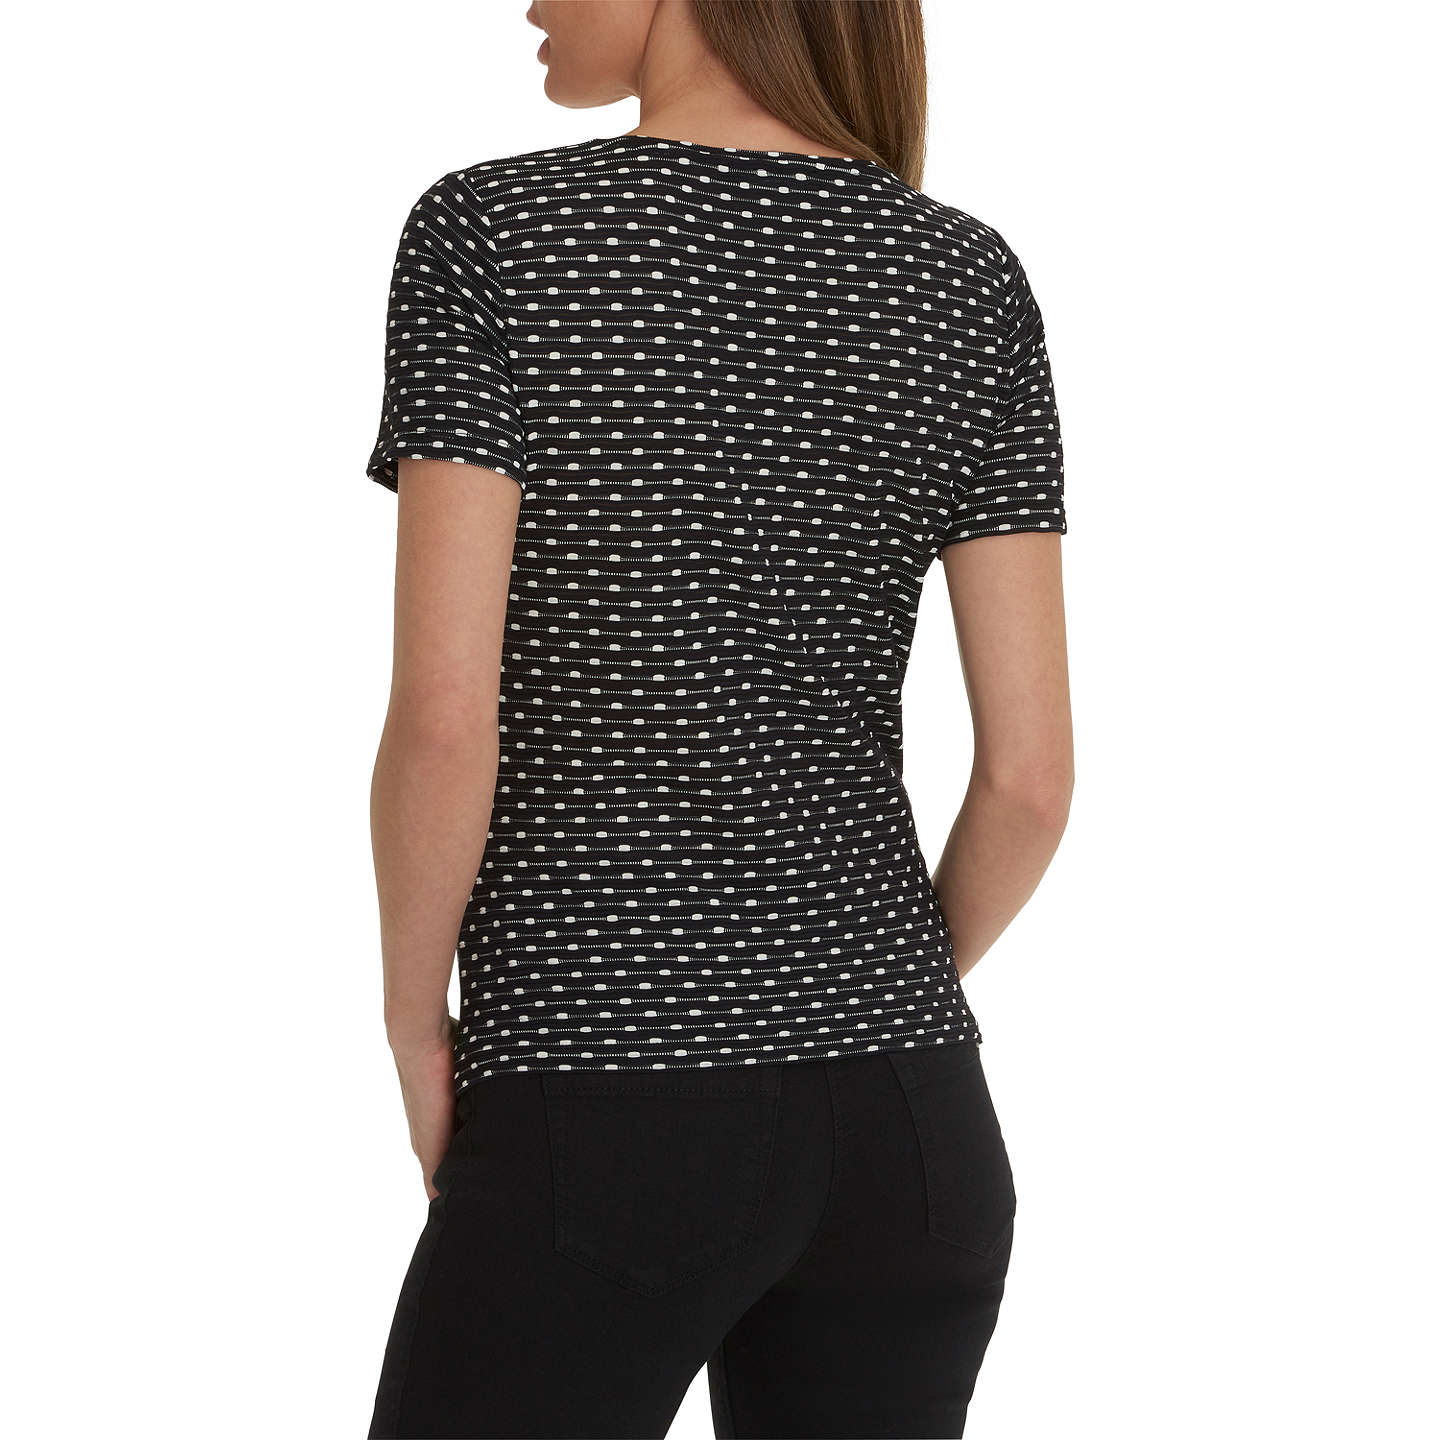 BuyBetty Barclay Short Sleeved Top, Black/Cream, 8 Online at johnlewis.com